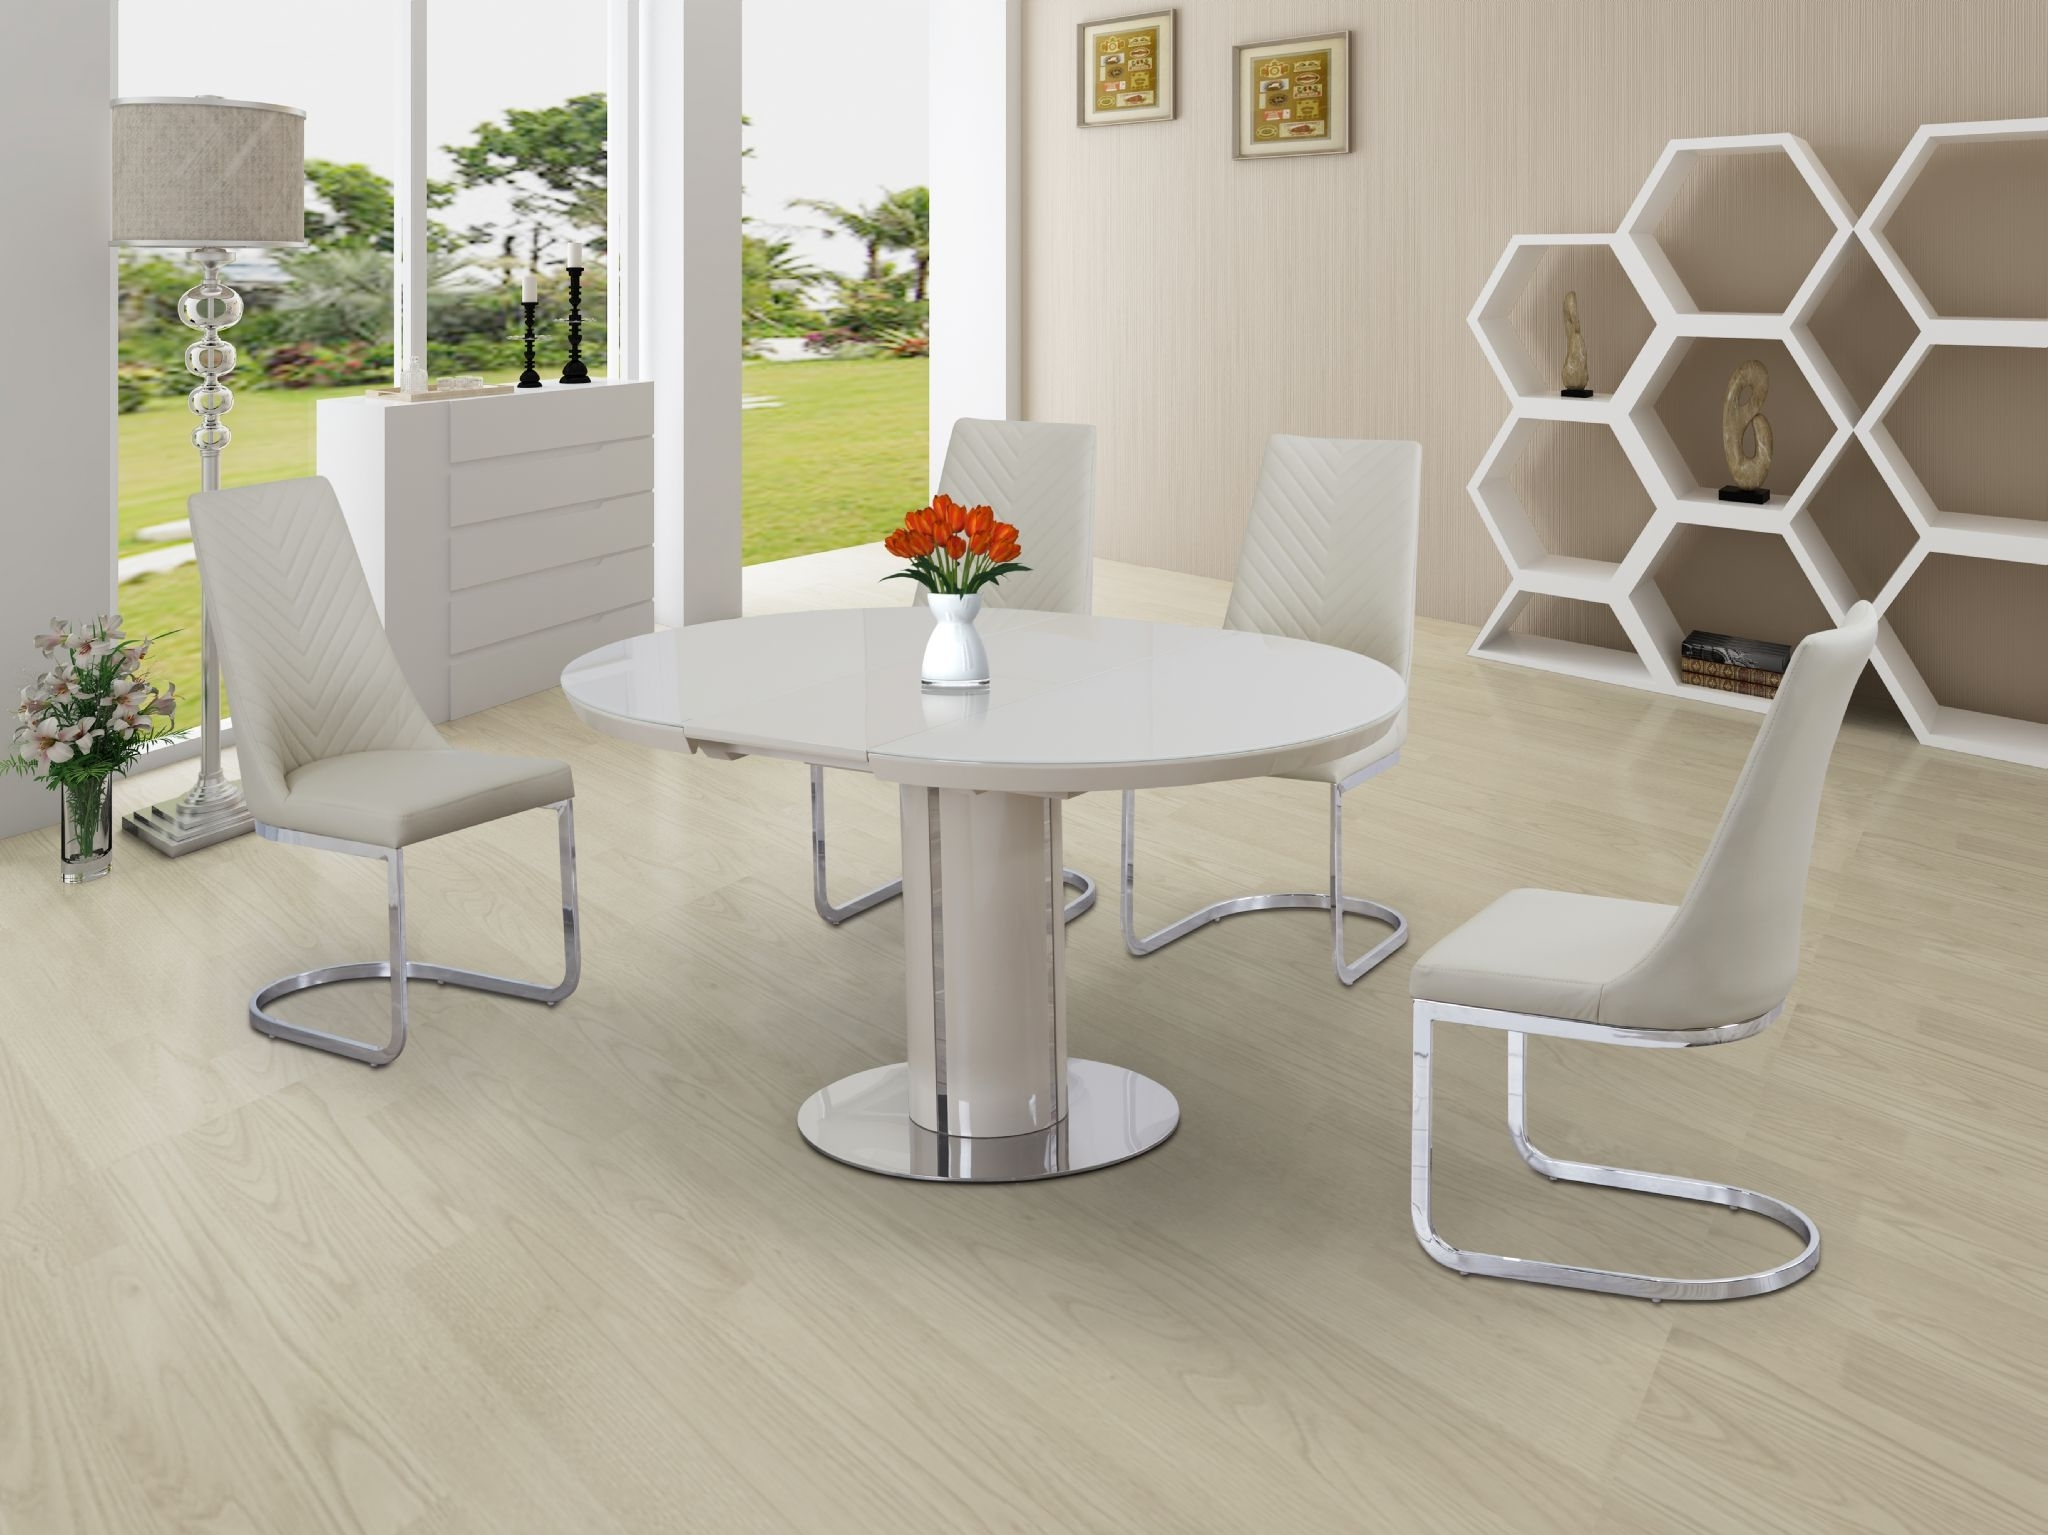 Eclipse Round Oval Gloss & Glass Extending 110 To 145 Cm Dining Inside Most Up To Date Round Extending Dining Tables And Chairs (View 9 of 25)